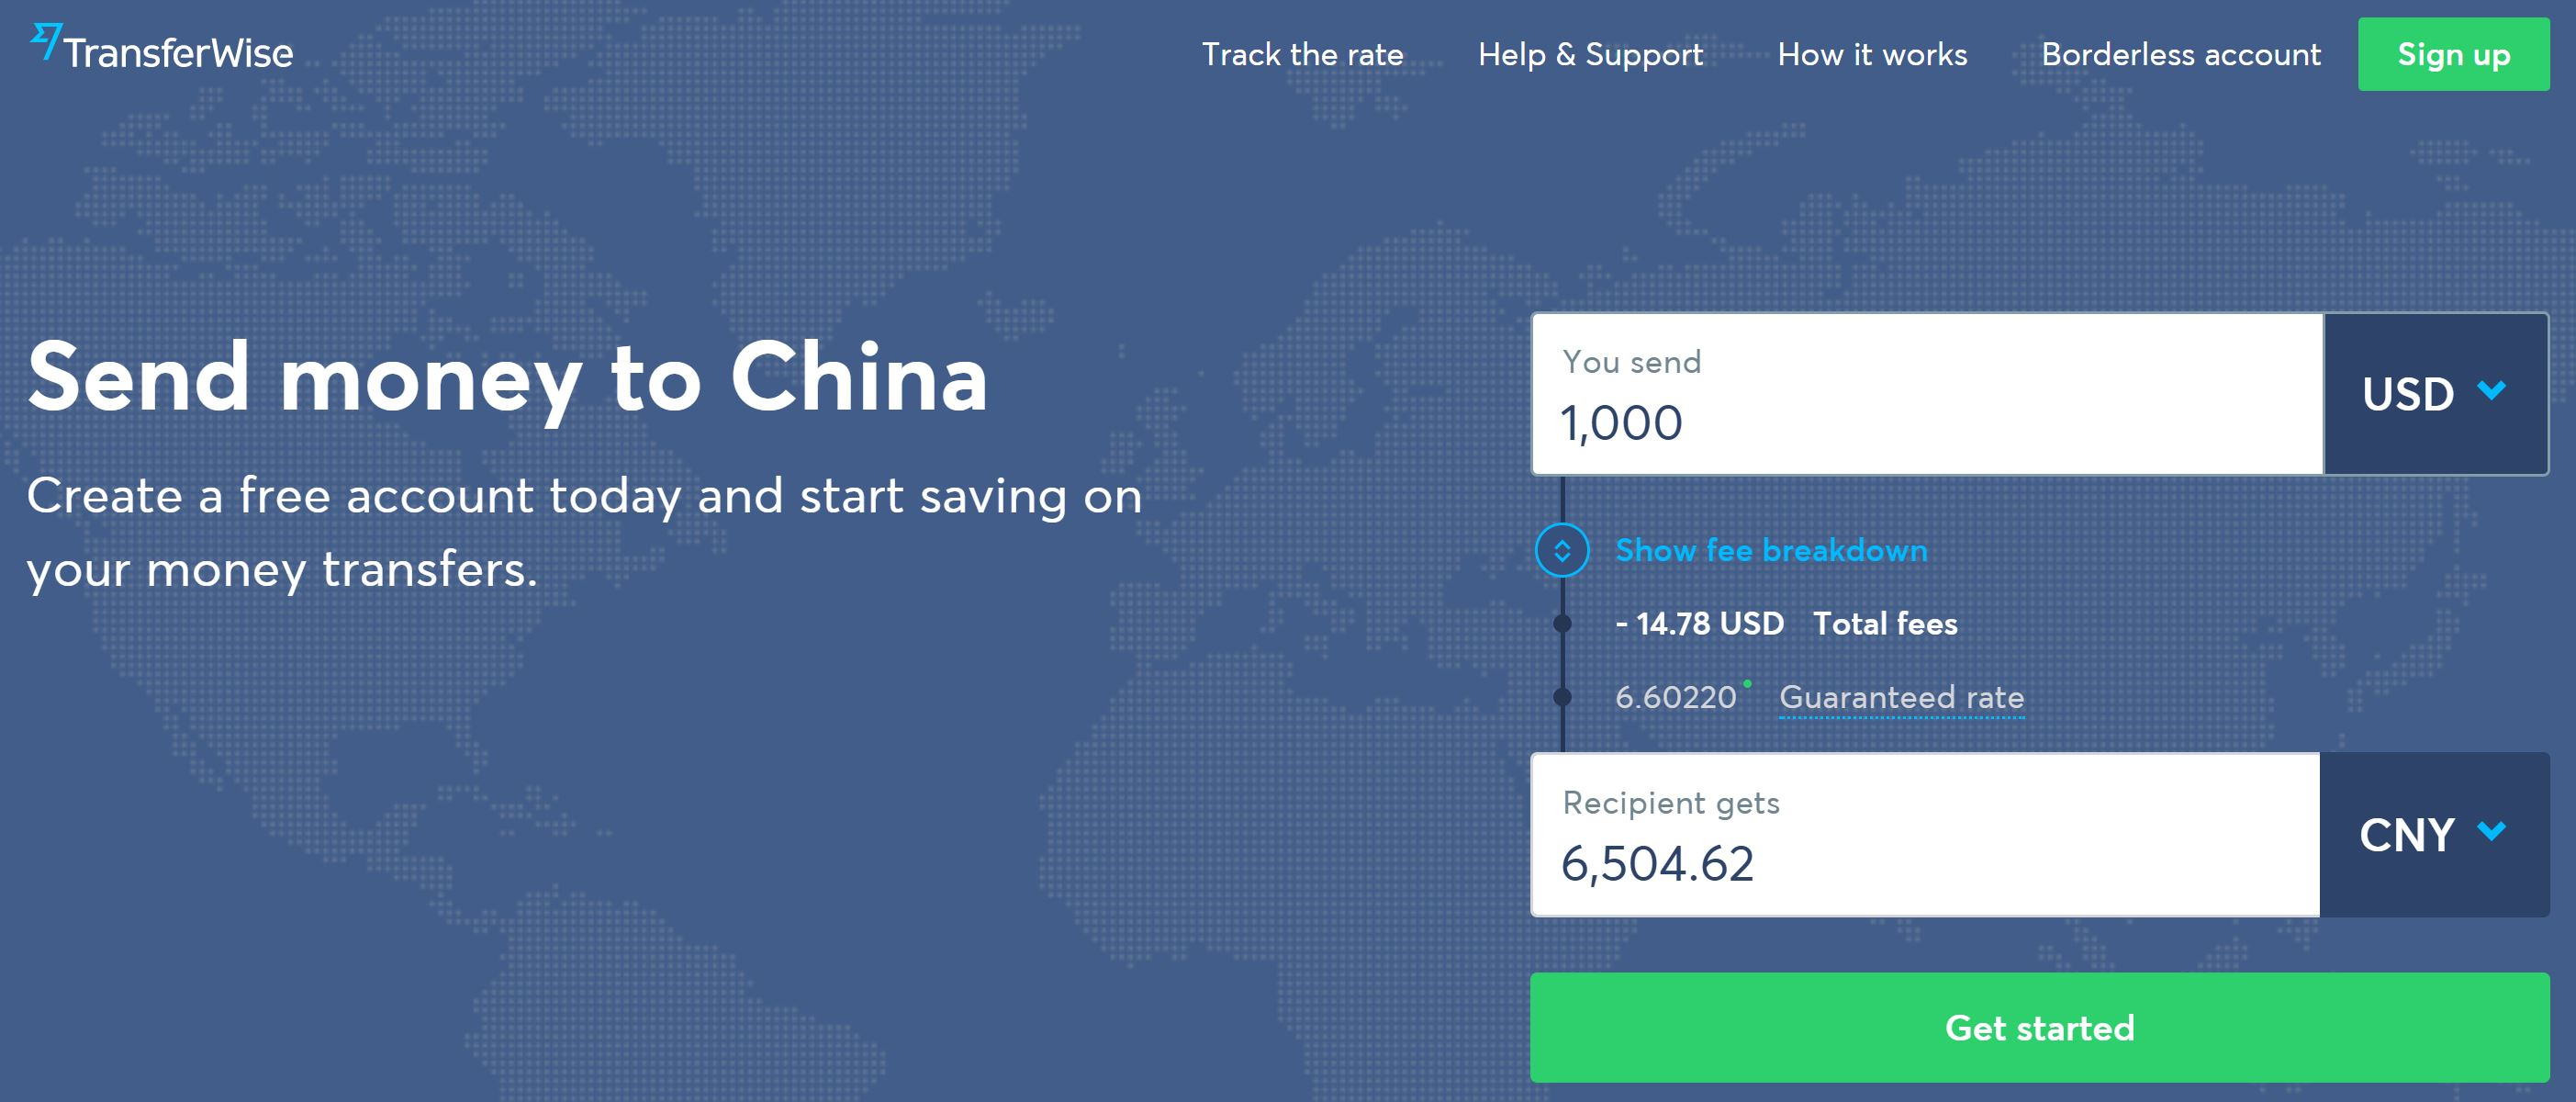 Money Transfer To China Review And Tips Wiring Rates If You Are Reading This Havent Yet Tried Sending Via A Legal Channel Online Or Cash Agent Should Definitely Give It Shot